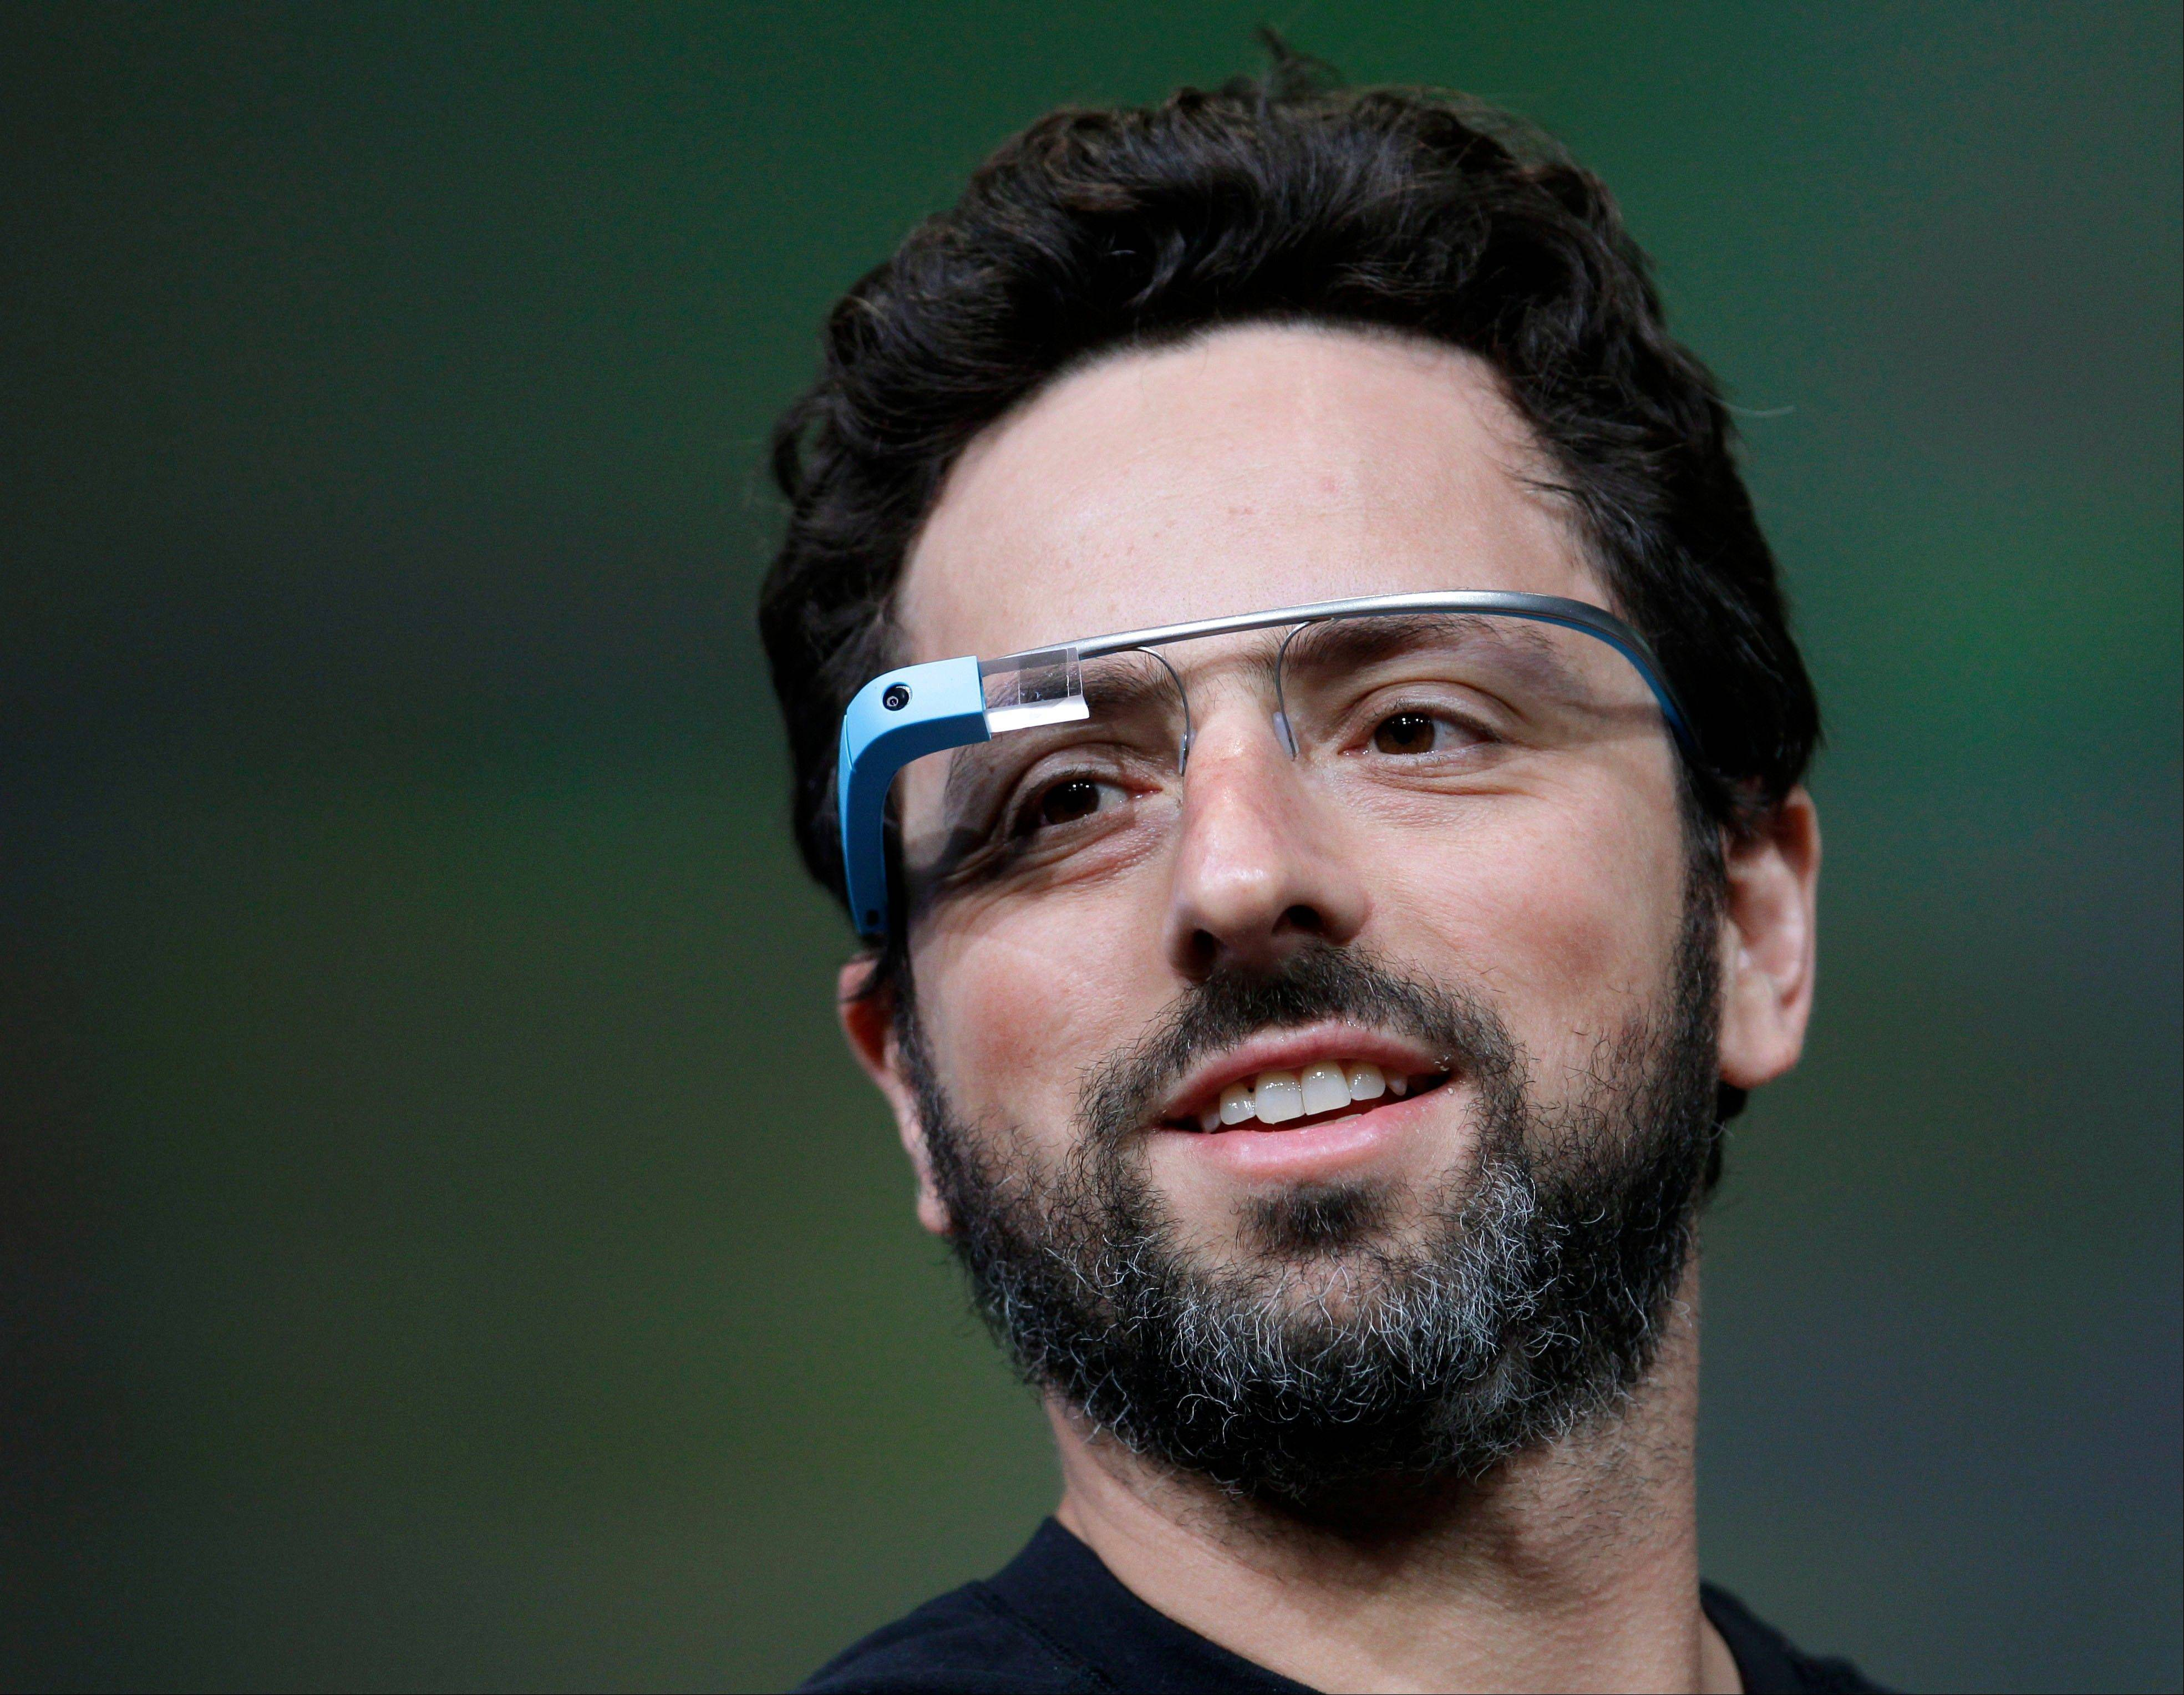 Google co-founder Sergey Brin demonstrates the company's computerized glasses, which feature a thumbnail-size transparent video display on a lens in front of the user's right eye.